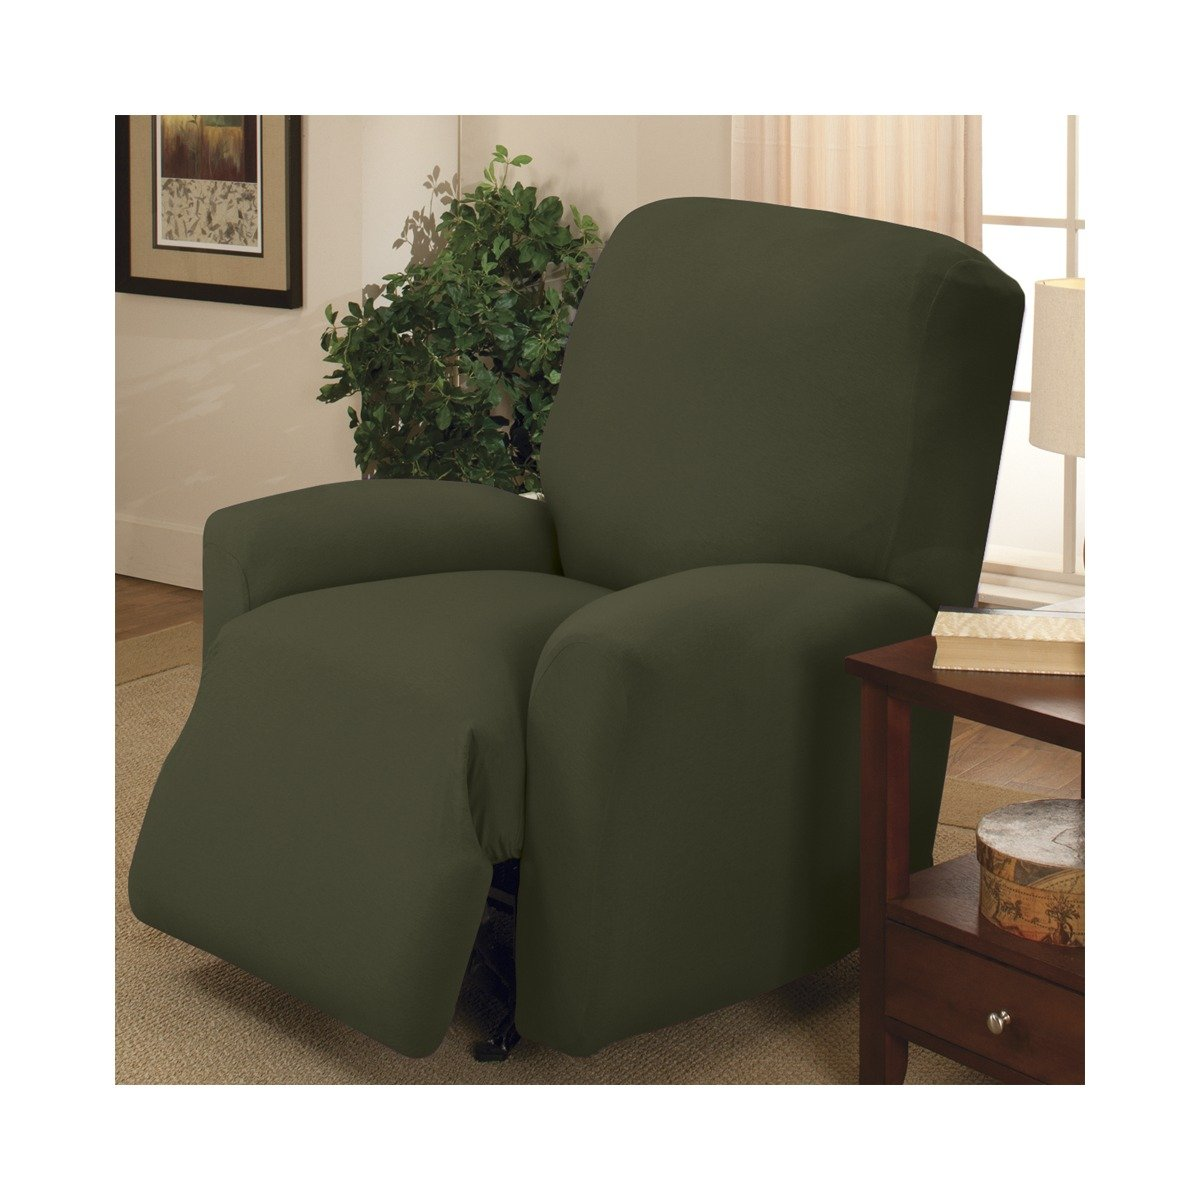 Amazon.com Stretch Jersey Large Recliner Slipcover Color Forest Home u0026 Kitchen  sc 1 st  Amazon.com & Amazon.com: Stretch Jersey Large Recliner Slipcover Color: Forest ... islam-shia.org